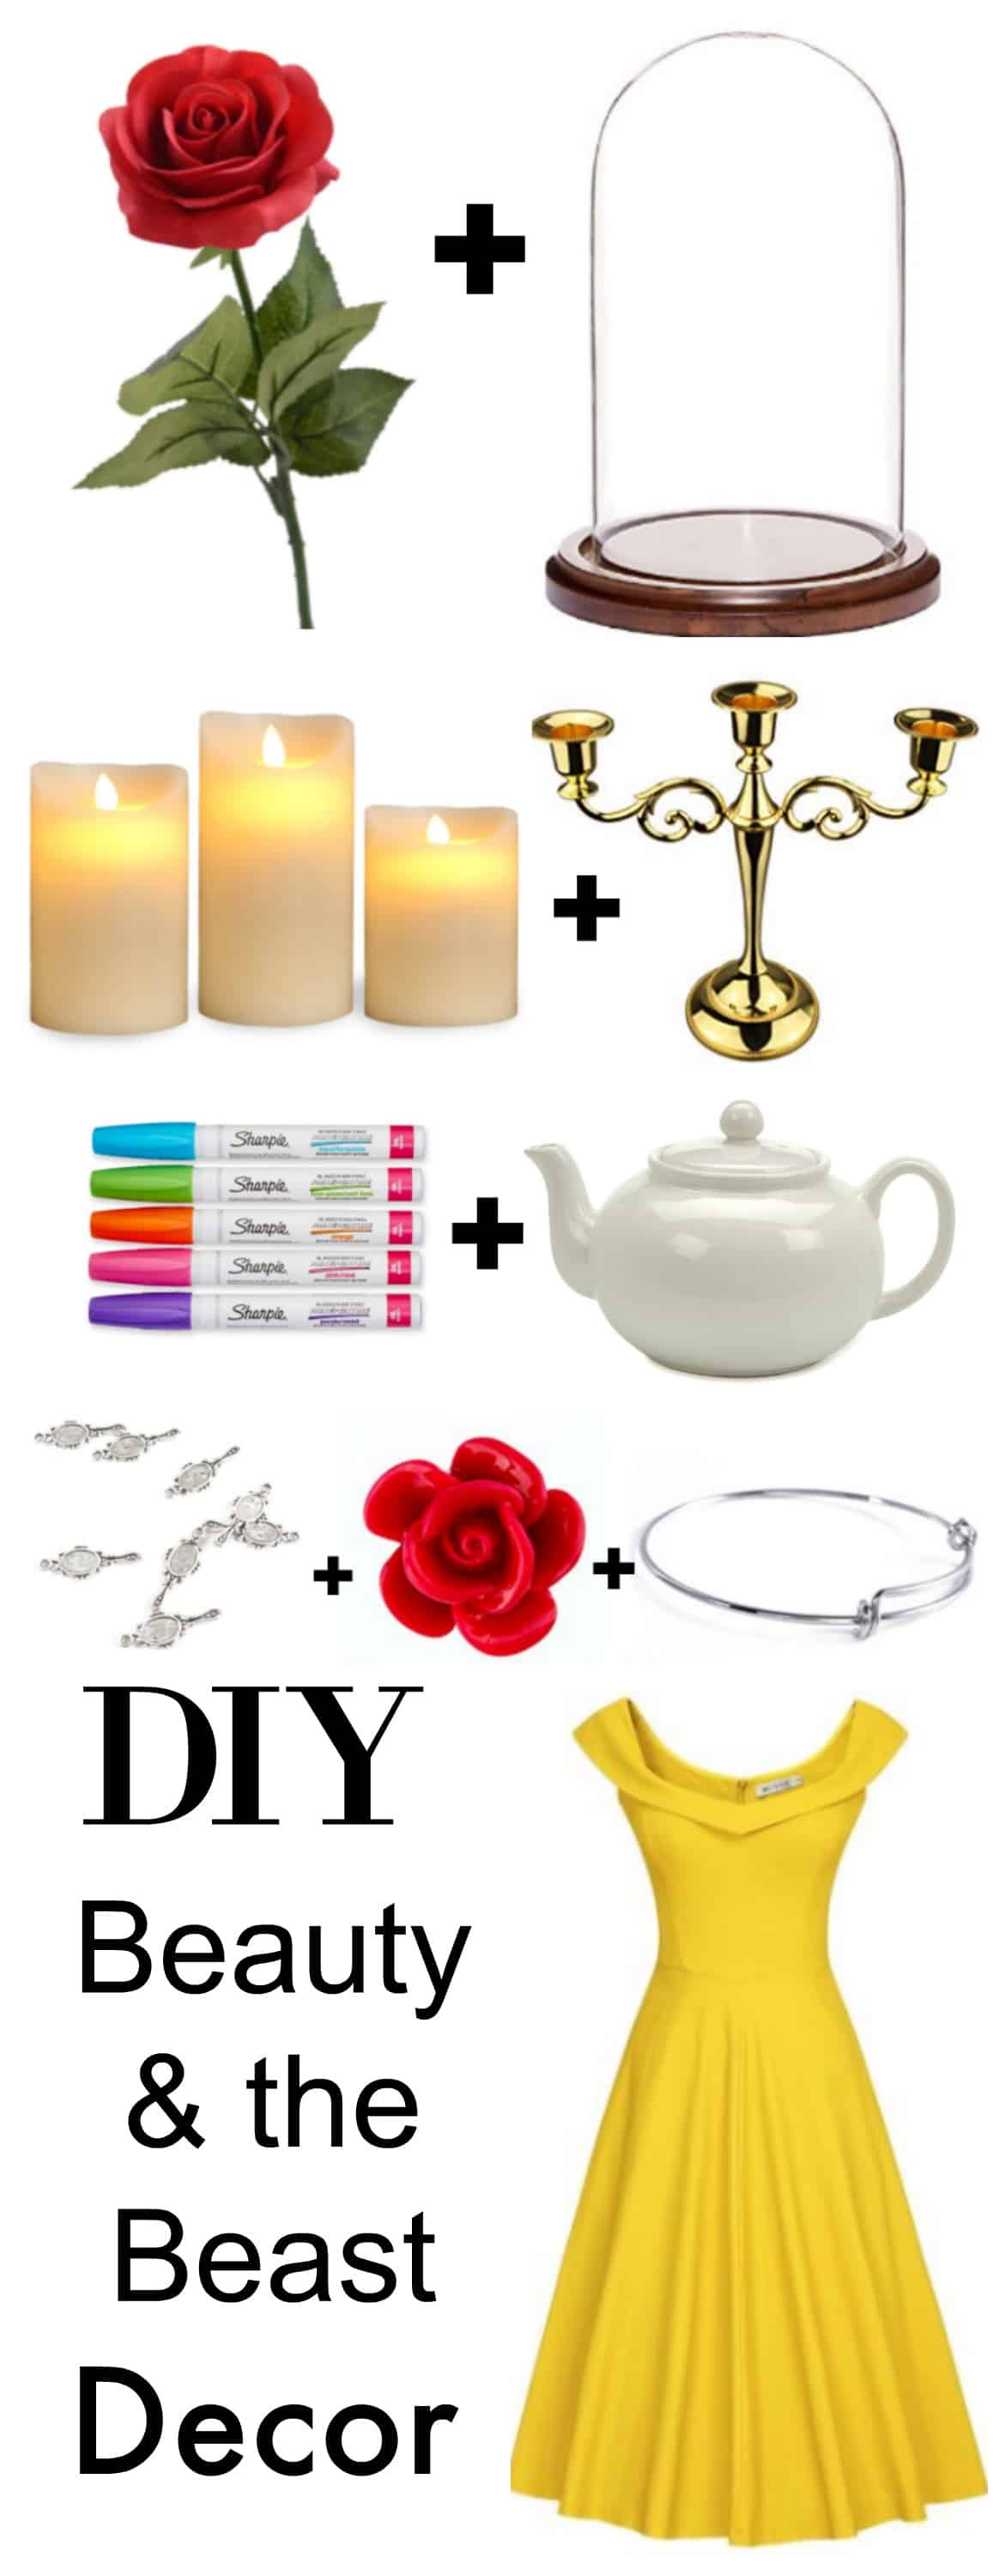 diy belle inspired beauty the beast jewelry tutorial. Black Bedroom Furniture Sets. Home Design Ideas